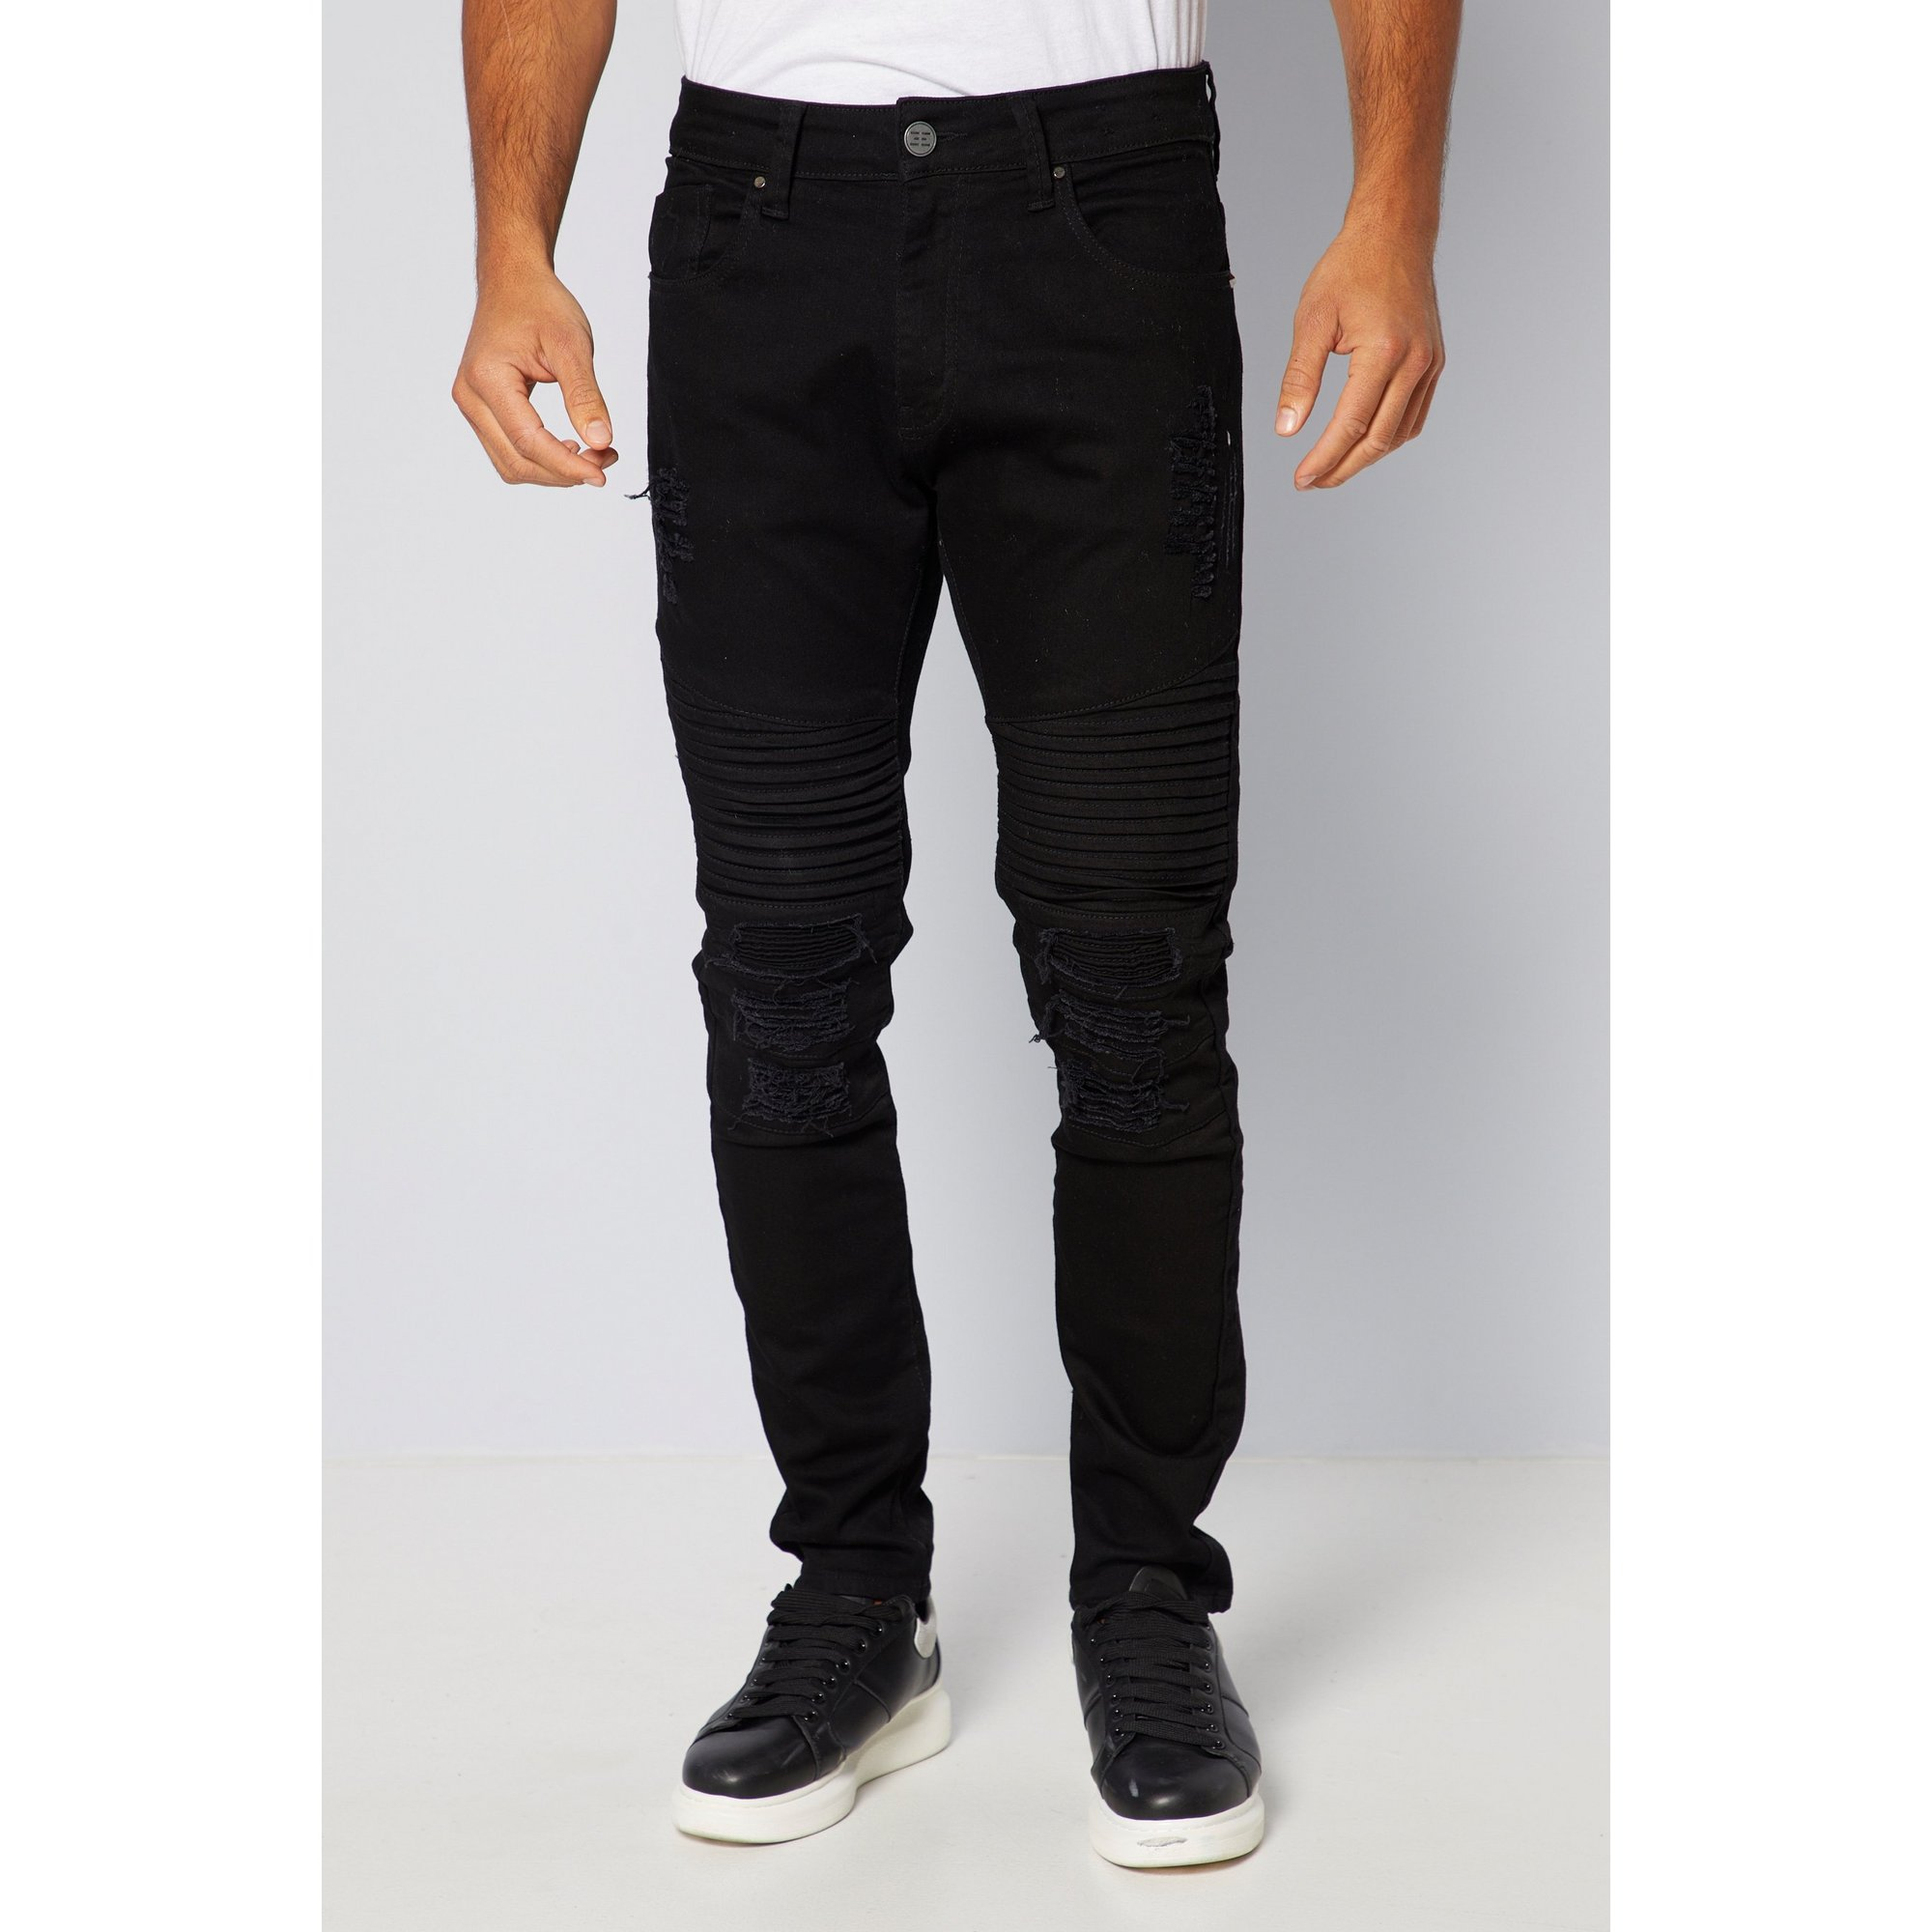 Image of 883 Police Ripped Straight Fit Jeans